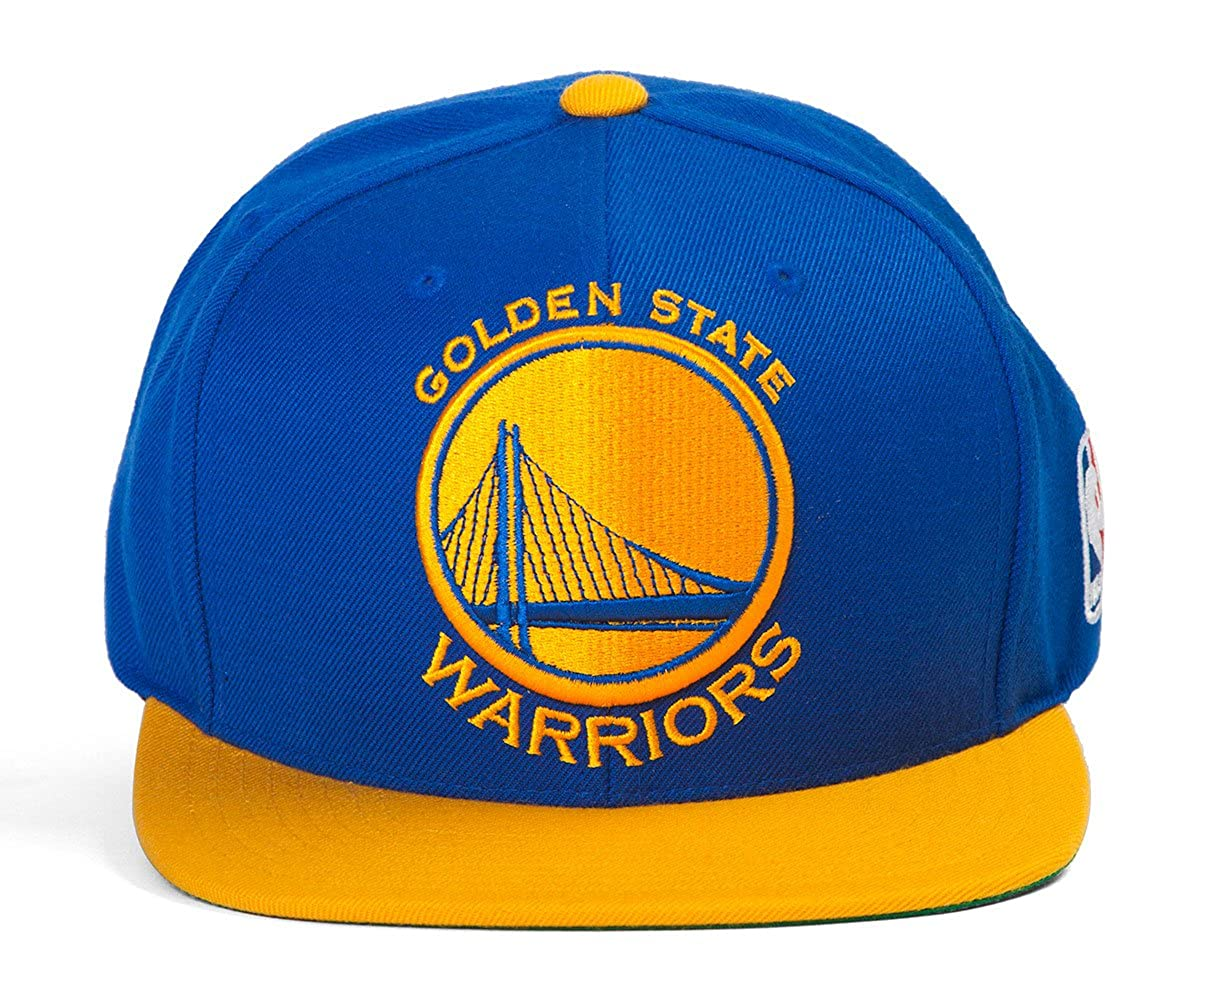 6b87416f5f6a1 Amazon.com  Golden State Warriors Blue Gold Mitchell   Ness XL Logo  Snapback Hat   Cap  Clothing